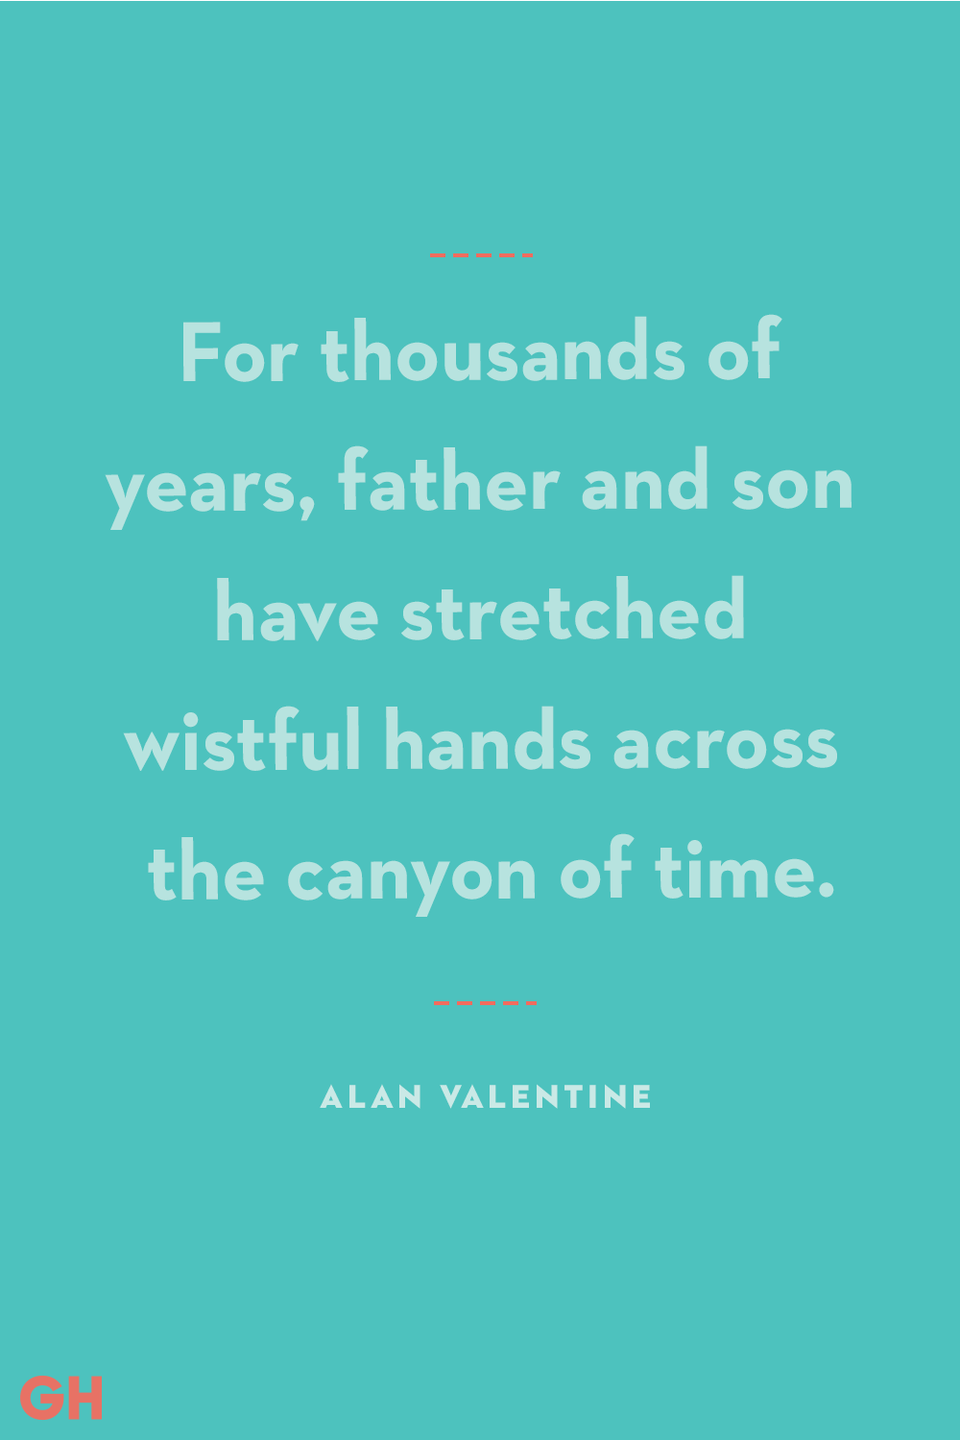 """<p>For thousands of years, father and son have stretched wistful hands across the canyon of time.</p><p><strong>RELATED: </strong><a href=""""https://www.goodhousekeeping.com/holidays/fathers-day/g27077850/personalized-fathers-day-gifts/"""" rel=""""nofollow noopener"""" target=""""_blank"""" data-ylk=""""slk:20 Personalized Father's Day Gifts That'll Make Your #1 Guy Feel Super Special"""" class=""""link rapid-noclick-resp"""">20 Personalized Father's Day Gifts That'll Make Your #1 Guy Feel Super Special</a></p>"""